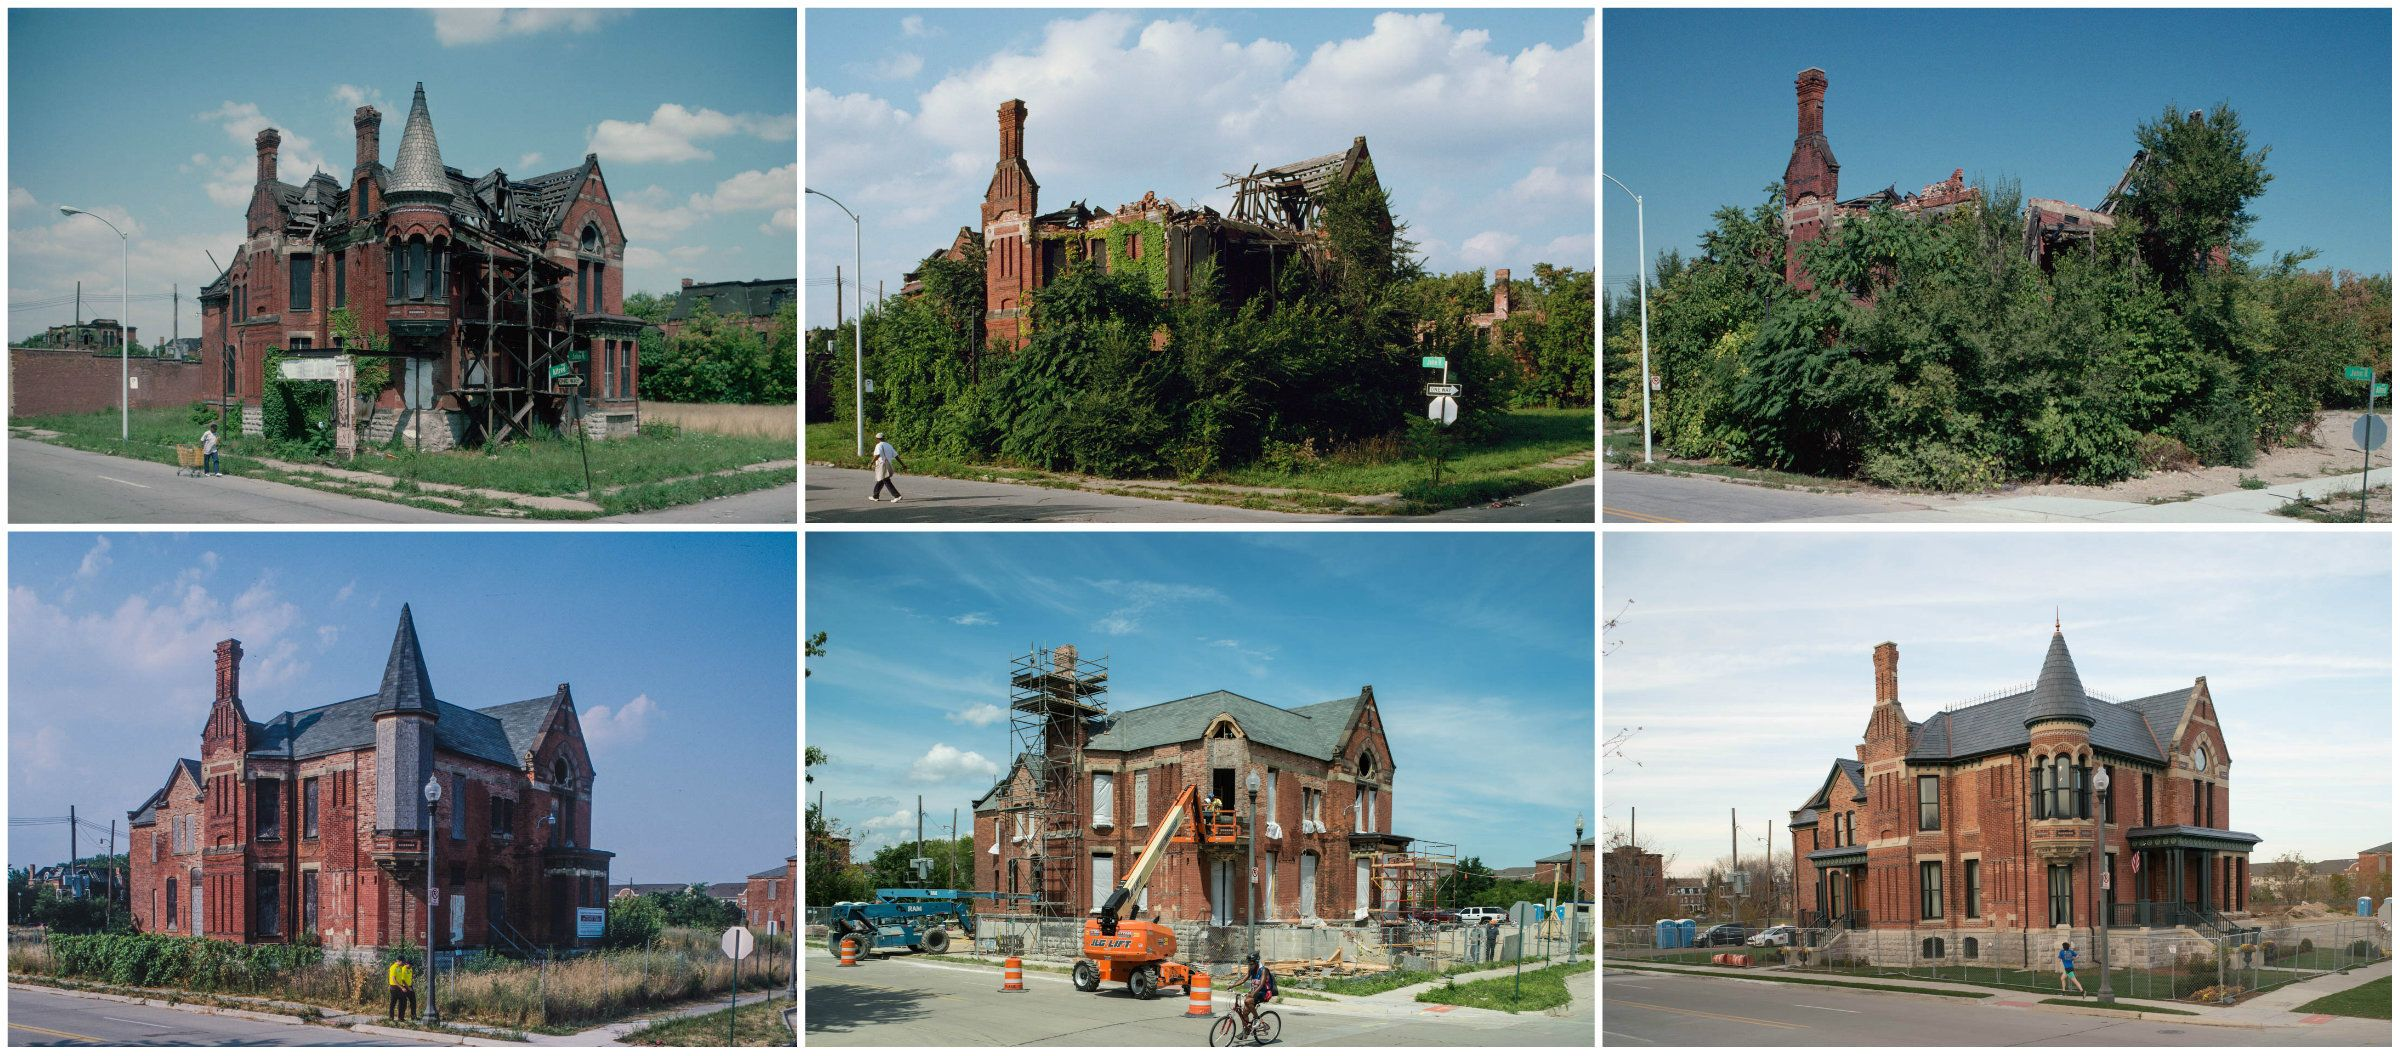 Ransom Gillis Mansion, Alfred at John R St., Detroit, shown in 1993, 2000, 2002, 2012, 2015 and againin 2015.